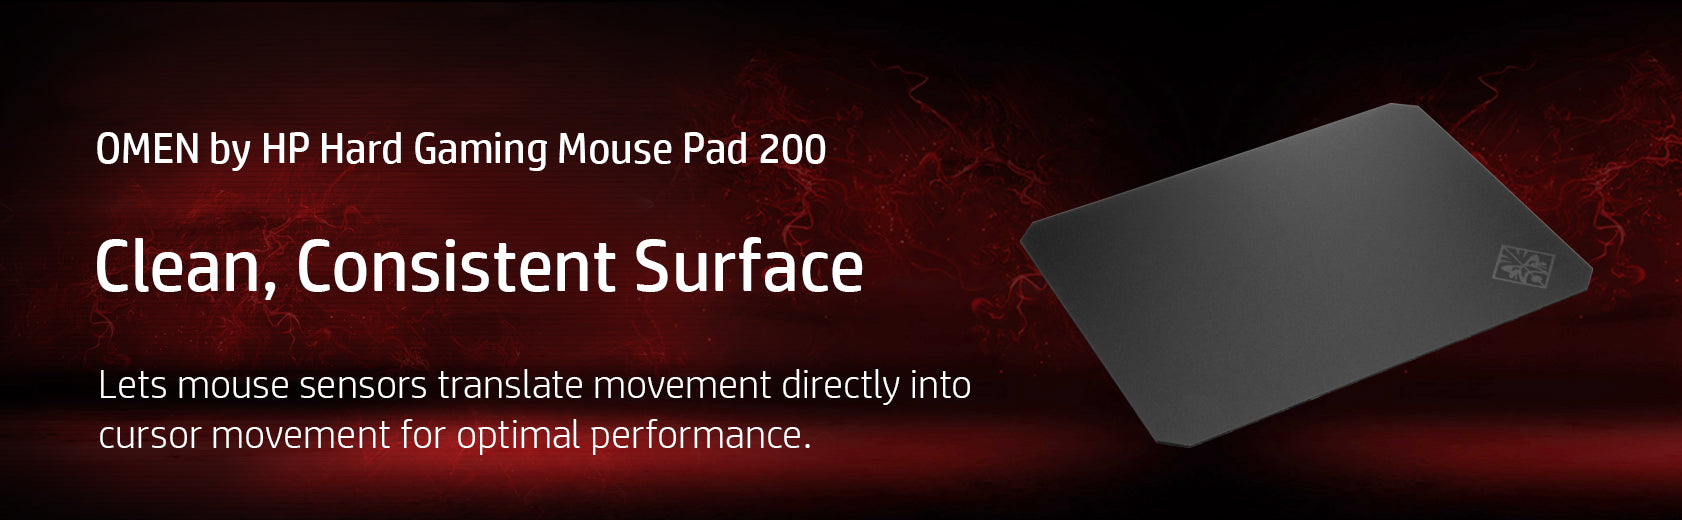 HP OMEN Hard Gaming Mouse Pad 200